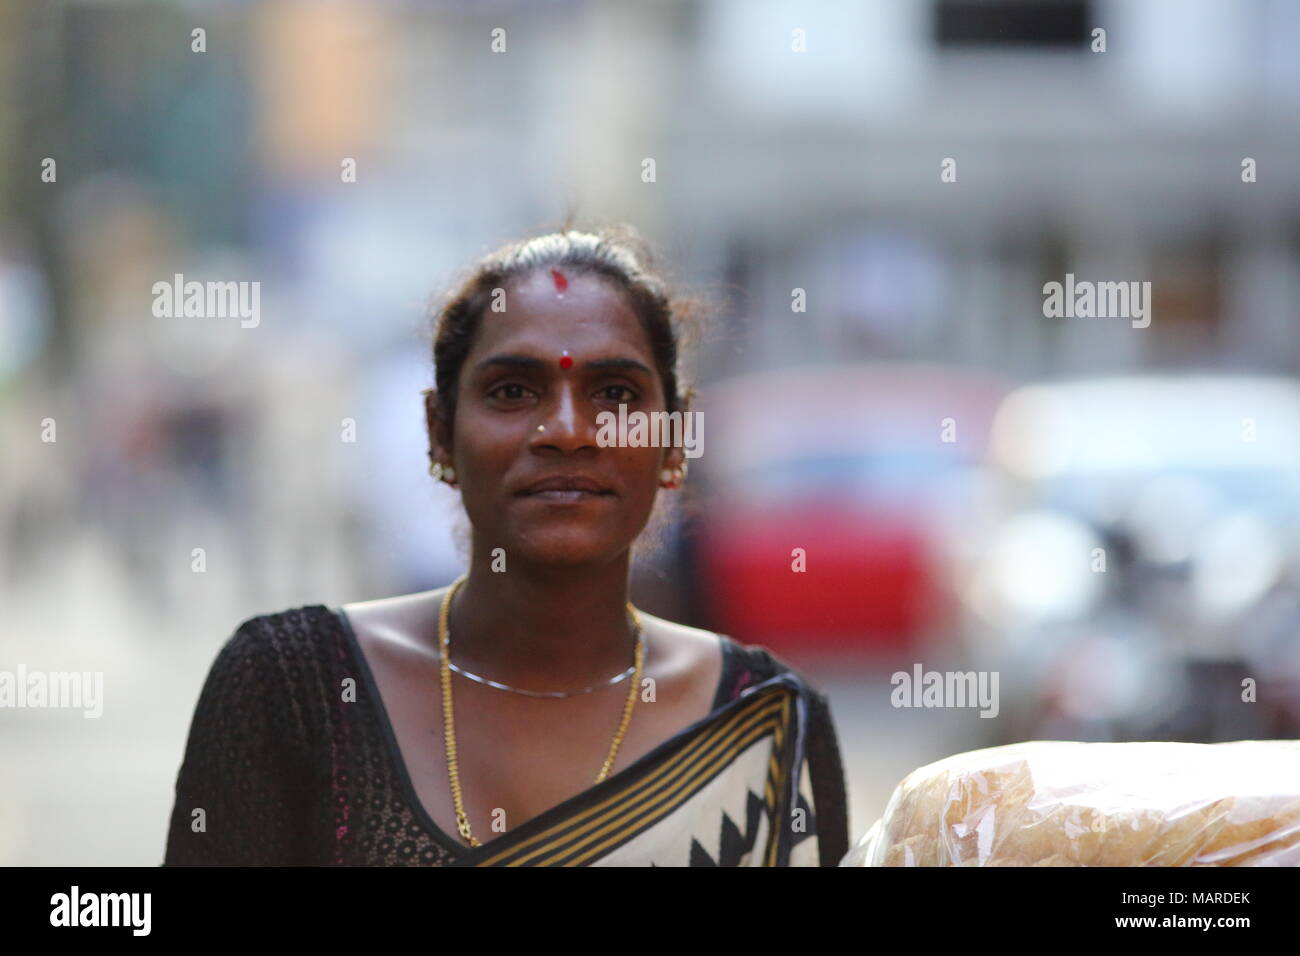 Bangalore, India - October 16, 2016: Portrait of an unknown Eunuch spotted this evening in Residency Road, Bangalore. Stock Photo